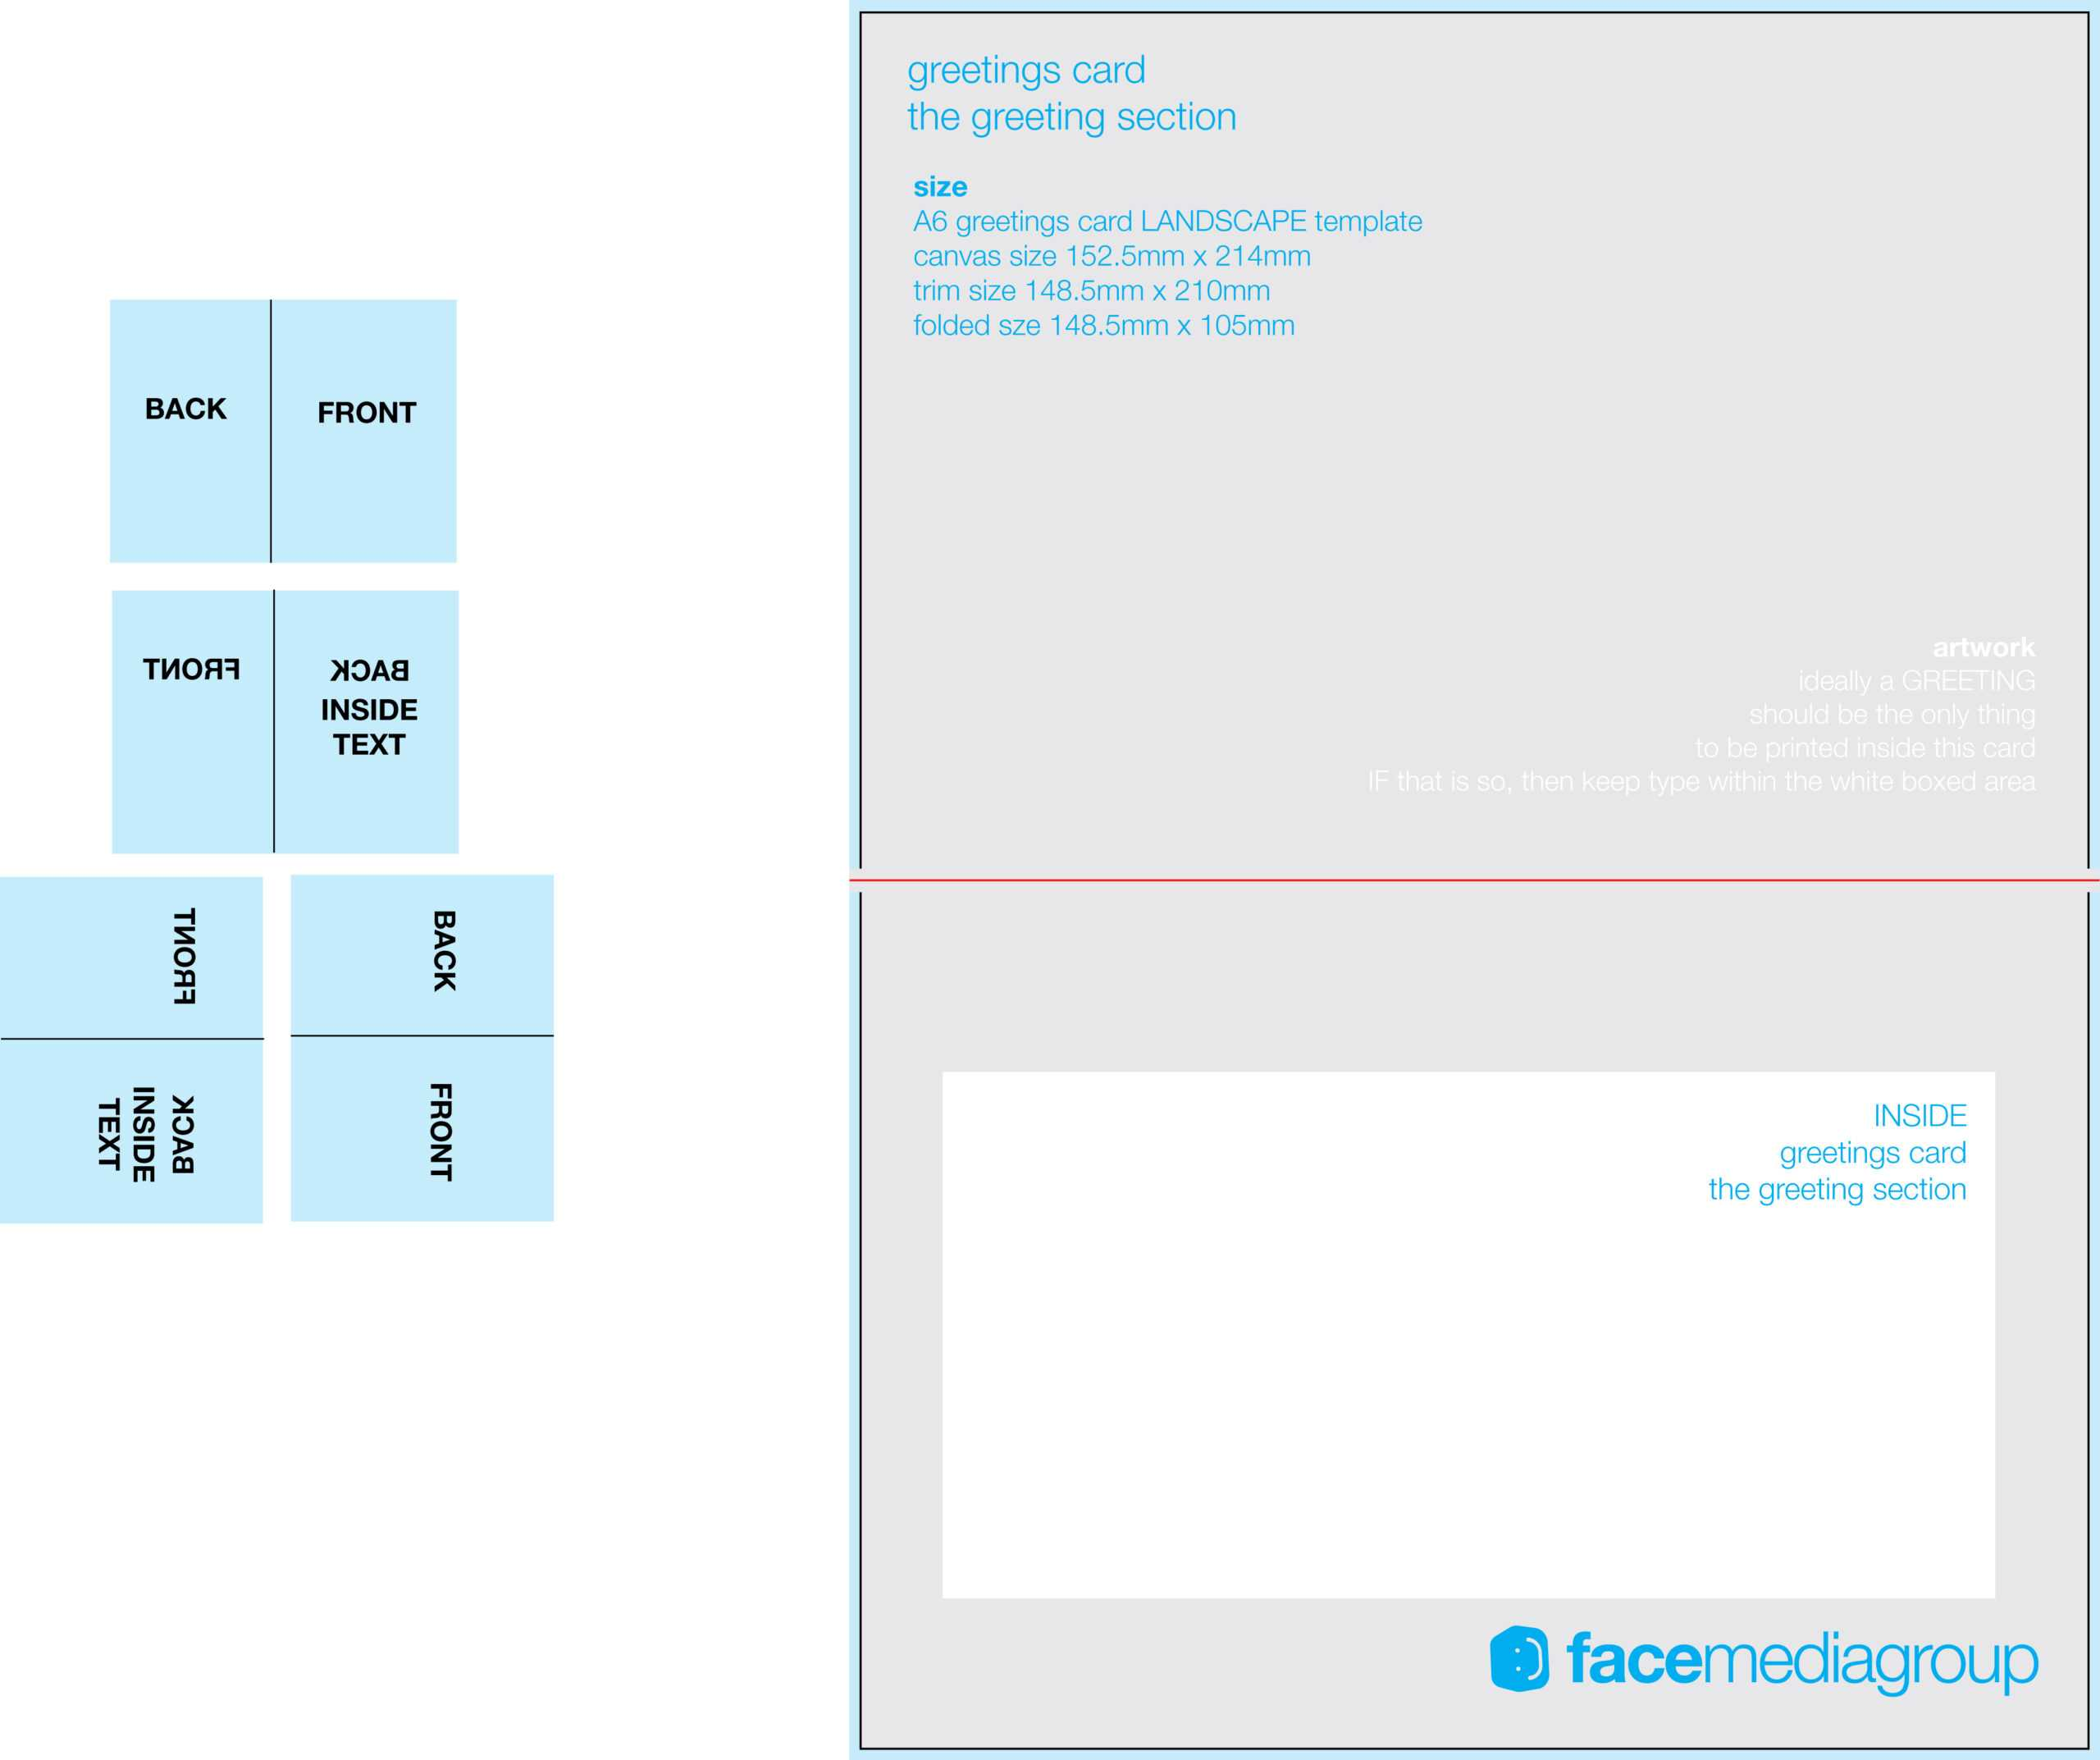 003 Free Blank Greeting Card Templates 314639 Template Ideas pertaining to Card Folding Templates Free